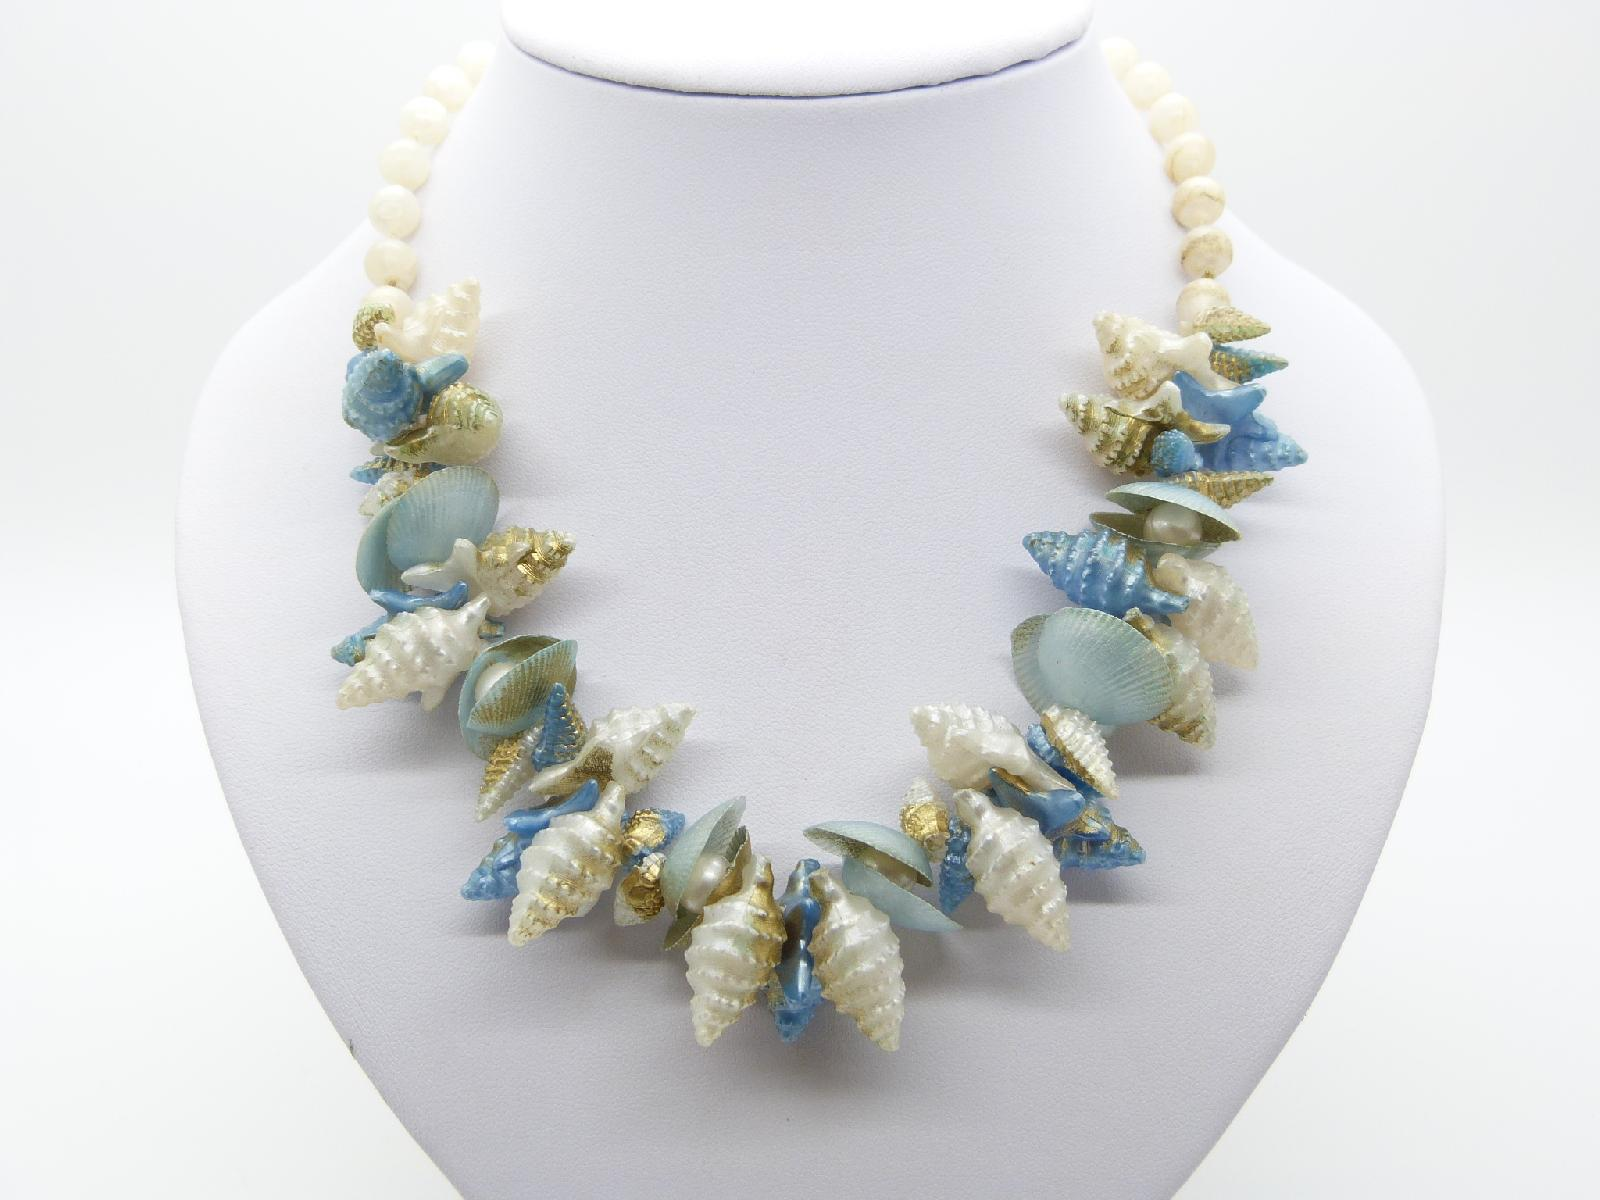 £22.00 - Vintage 50s Quirky White and Blue Plastic Shell Charm Bead Necklace